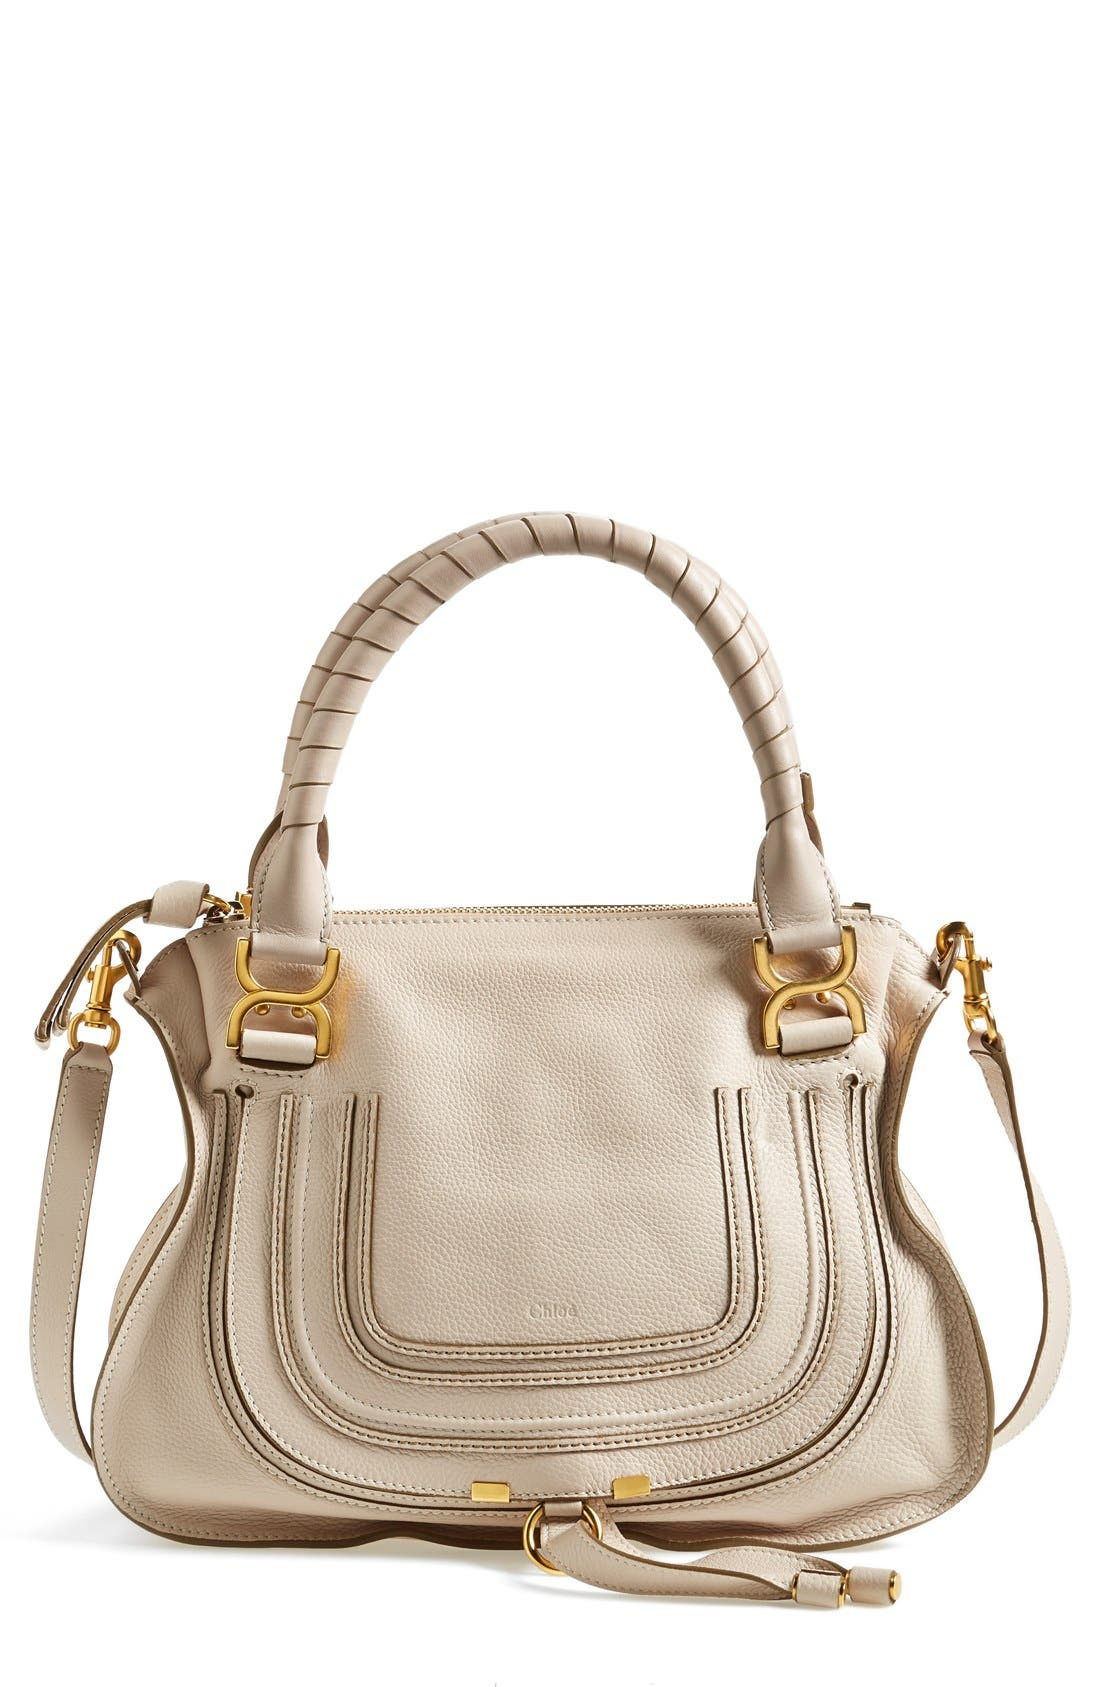 Chlo� \u0027Medium Marcie\u0027 Leather Satchel